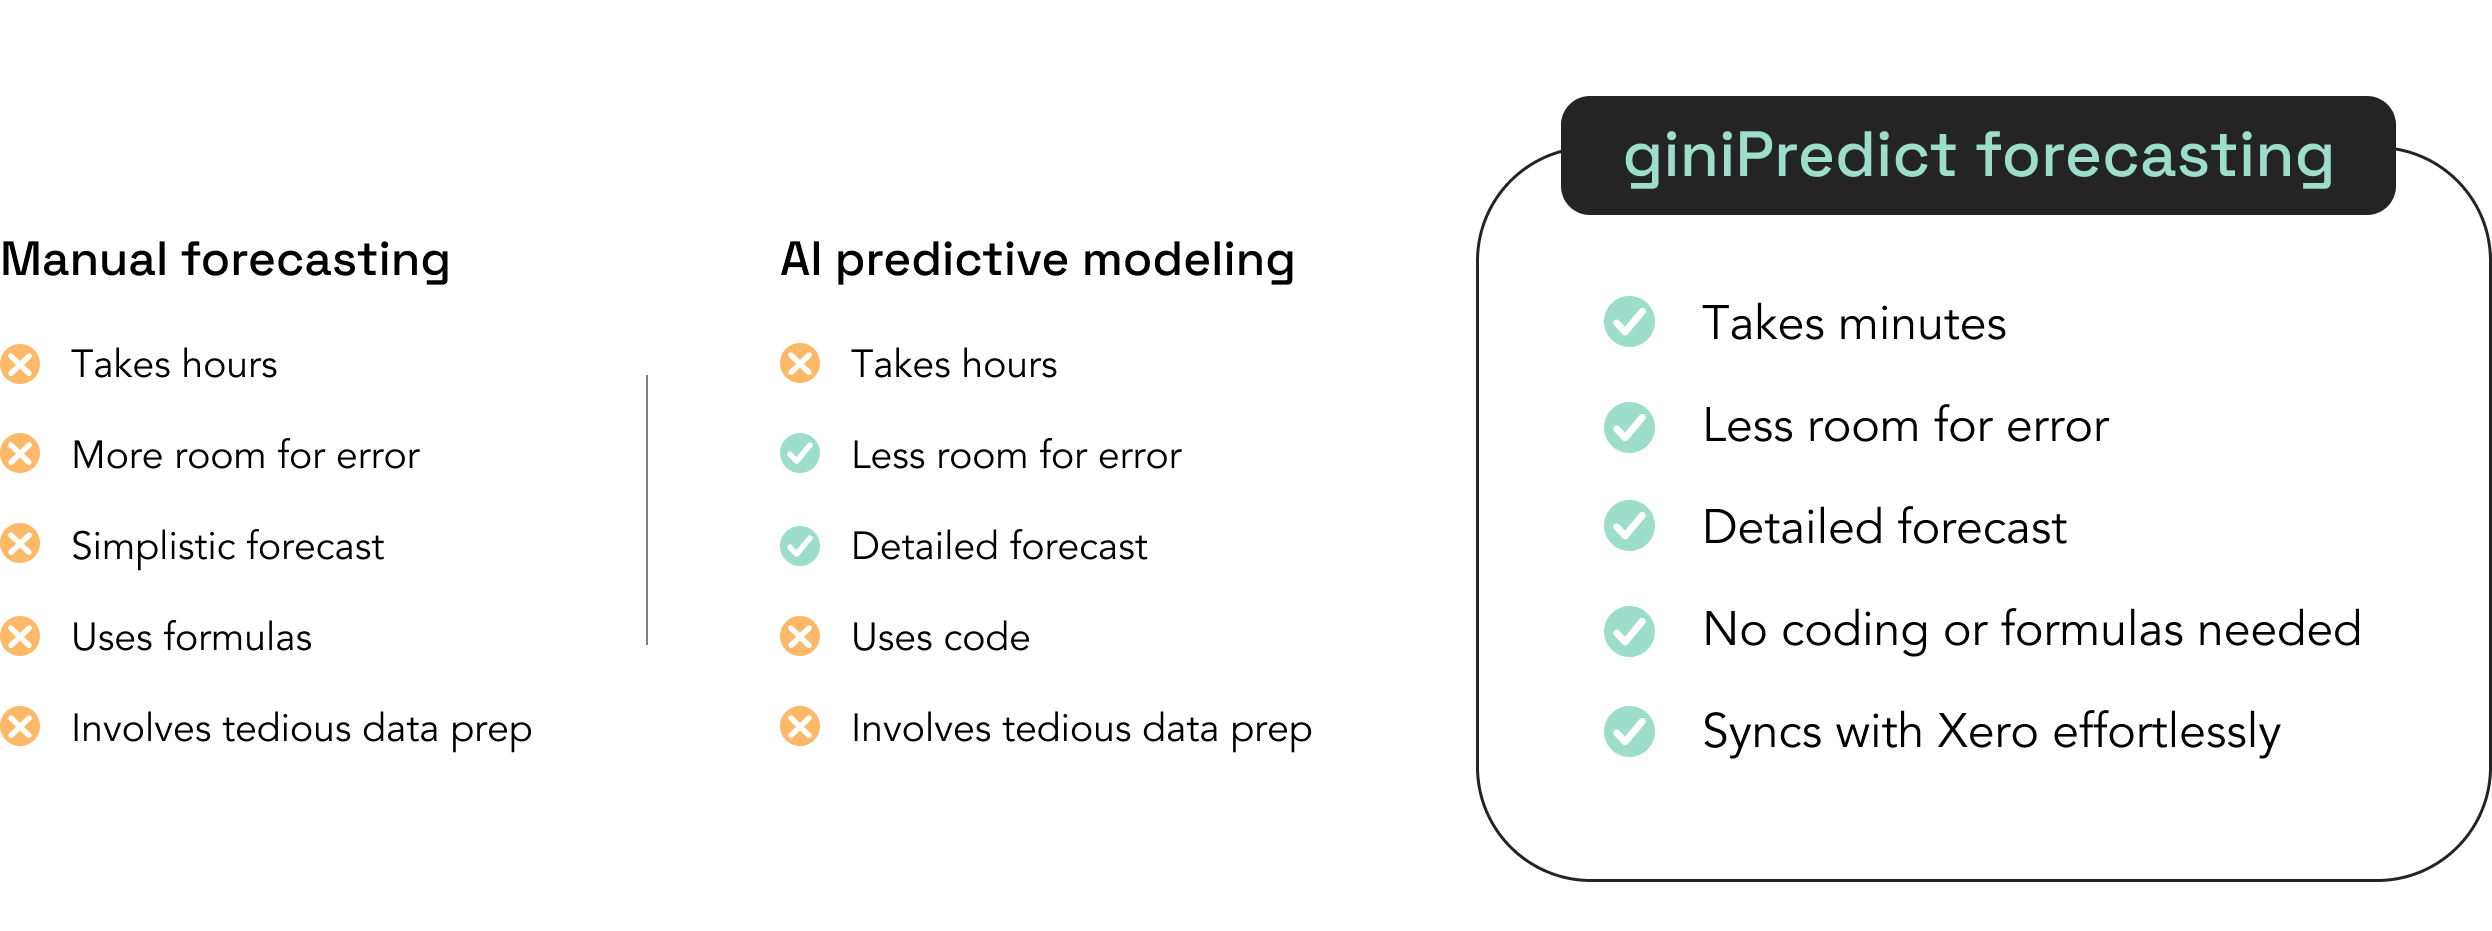 giniPredict is better than manual forecasting and AI predictive modeling